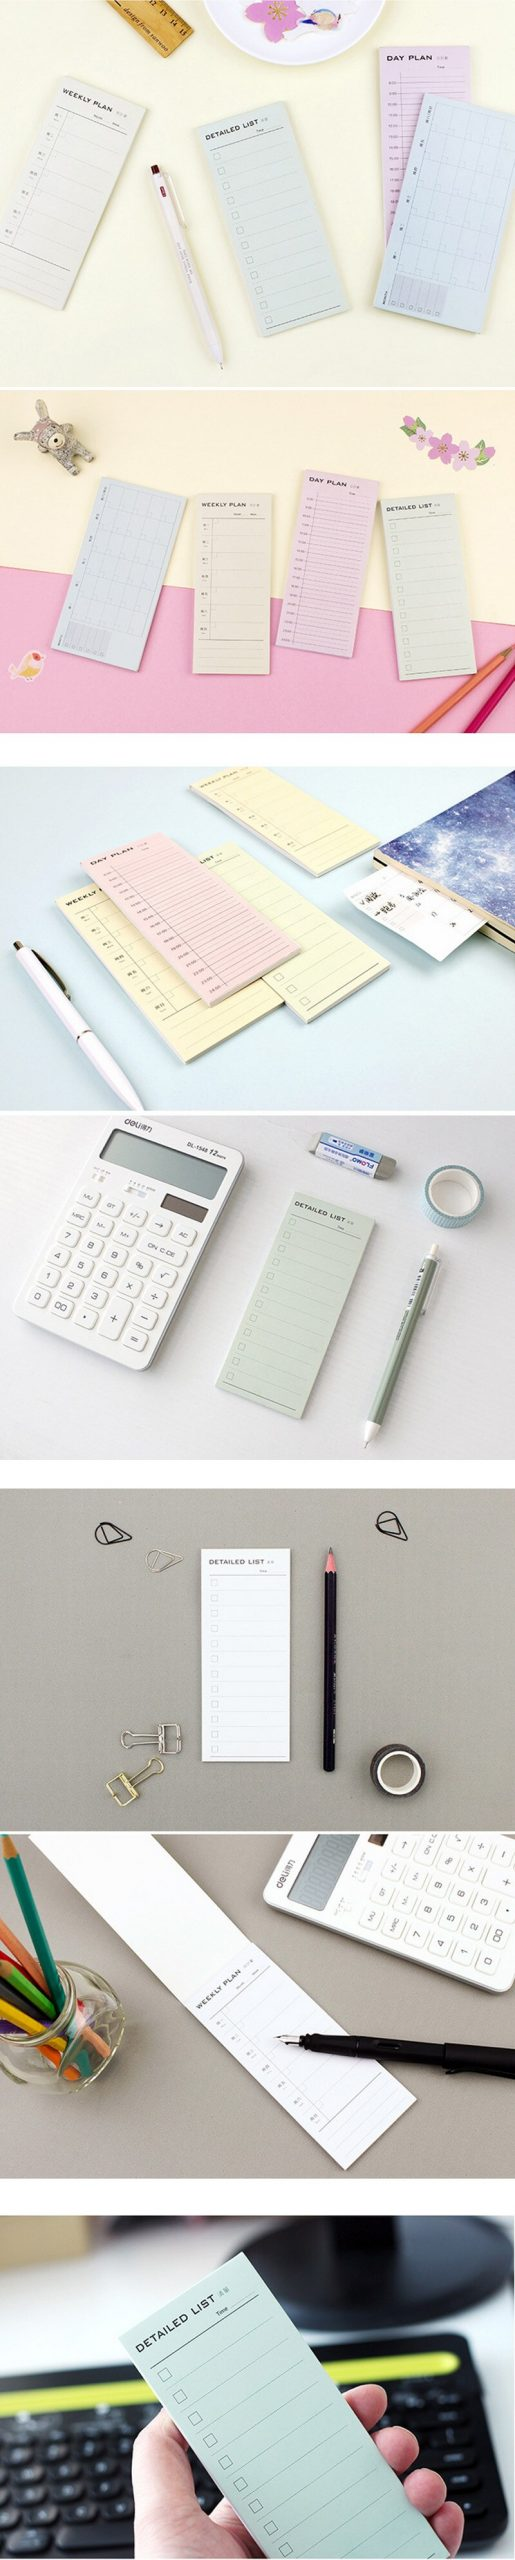 Weekly plan Inventory student notebook diary book material escolar memo notepad kawaii stationery school supplies